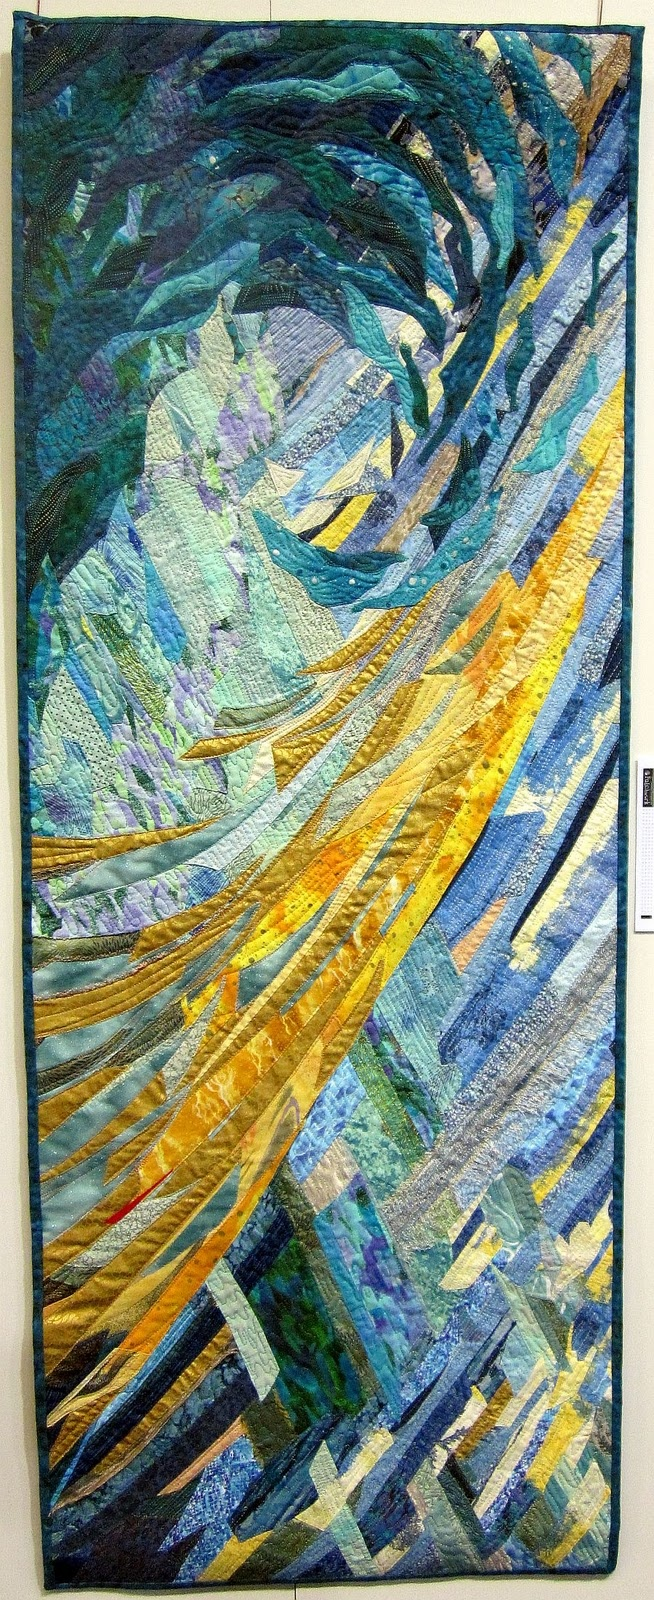 quilt with contemporary modern craftsy rainbow kits drunkard s quilts quilting art dazzling splashofcolorgfs article path create